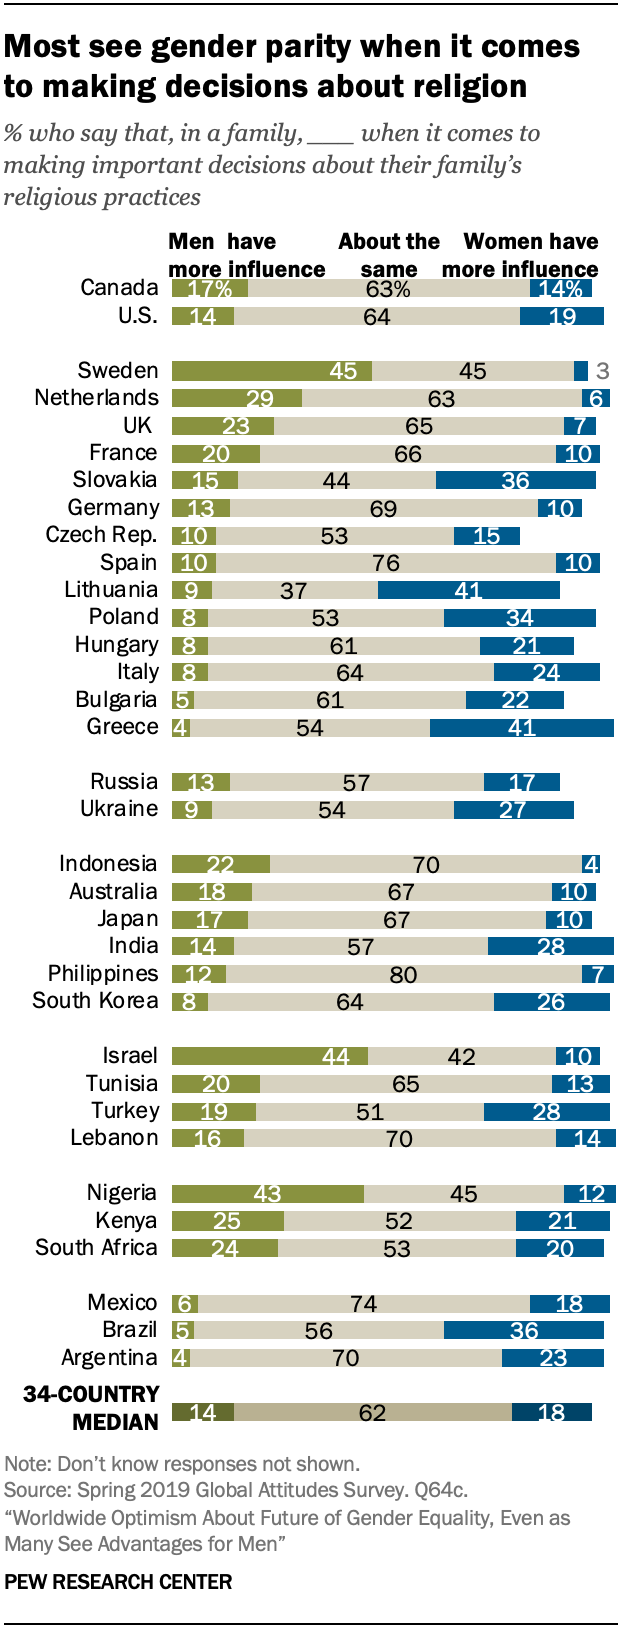 Most see gender parity when it comes to making decisions about religion